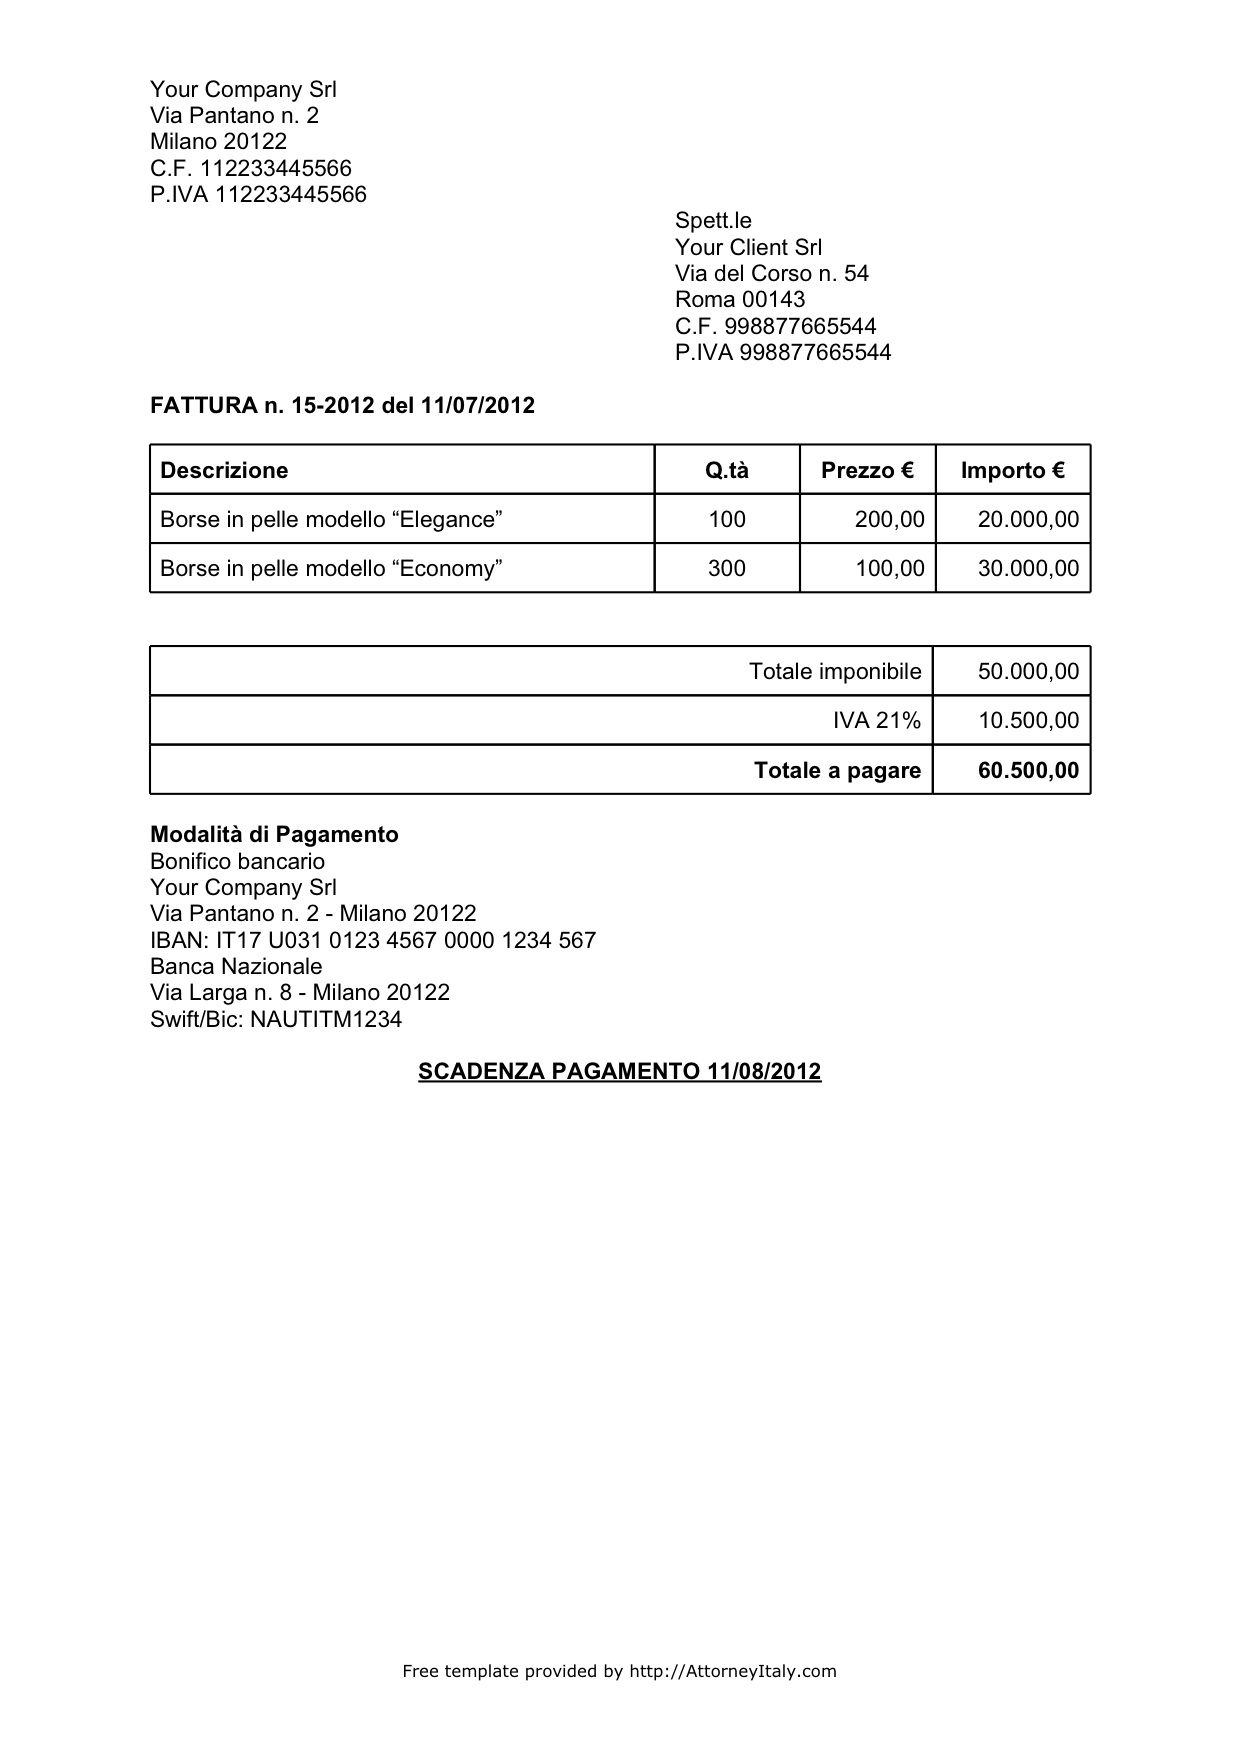 Italian Invoice Template Personal Uk Img For Standard / Hsbcu